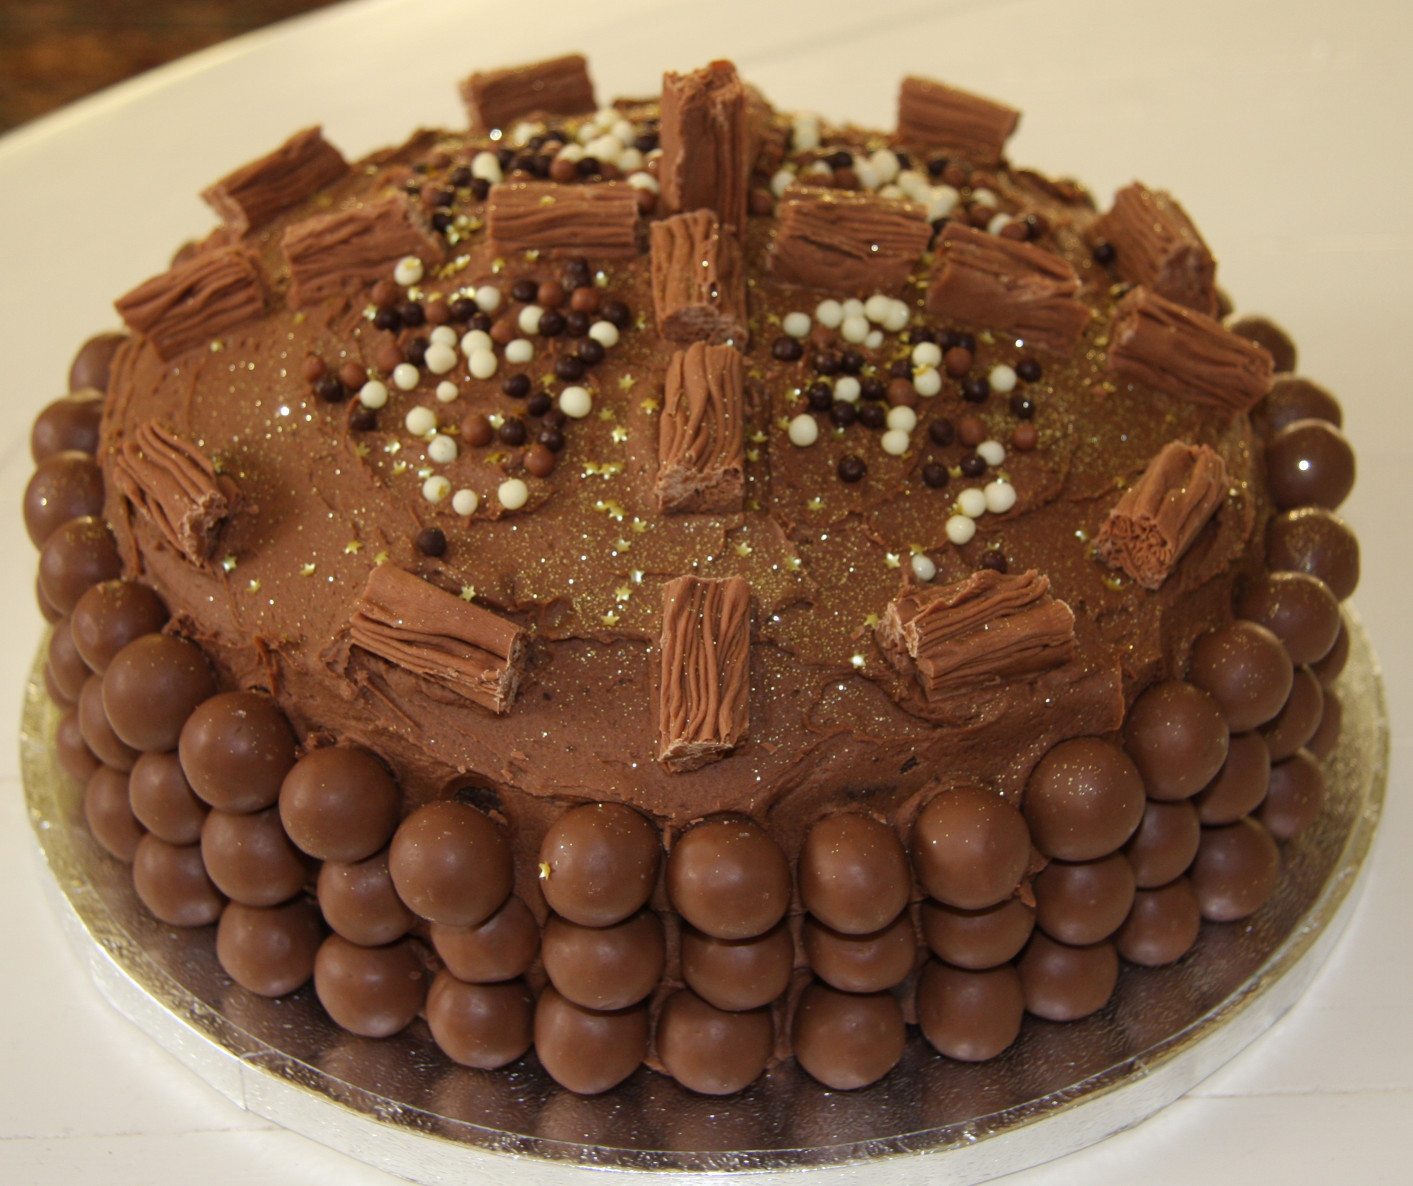 Chocolate Birthday Cake  Chocolate Birthday Cake – with extra chocolate